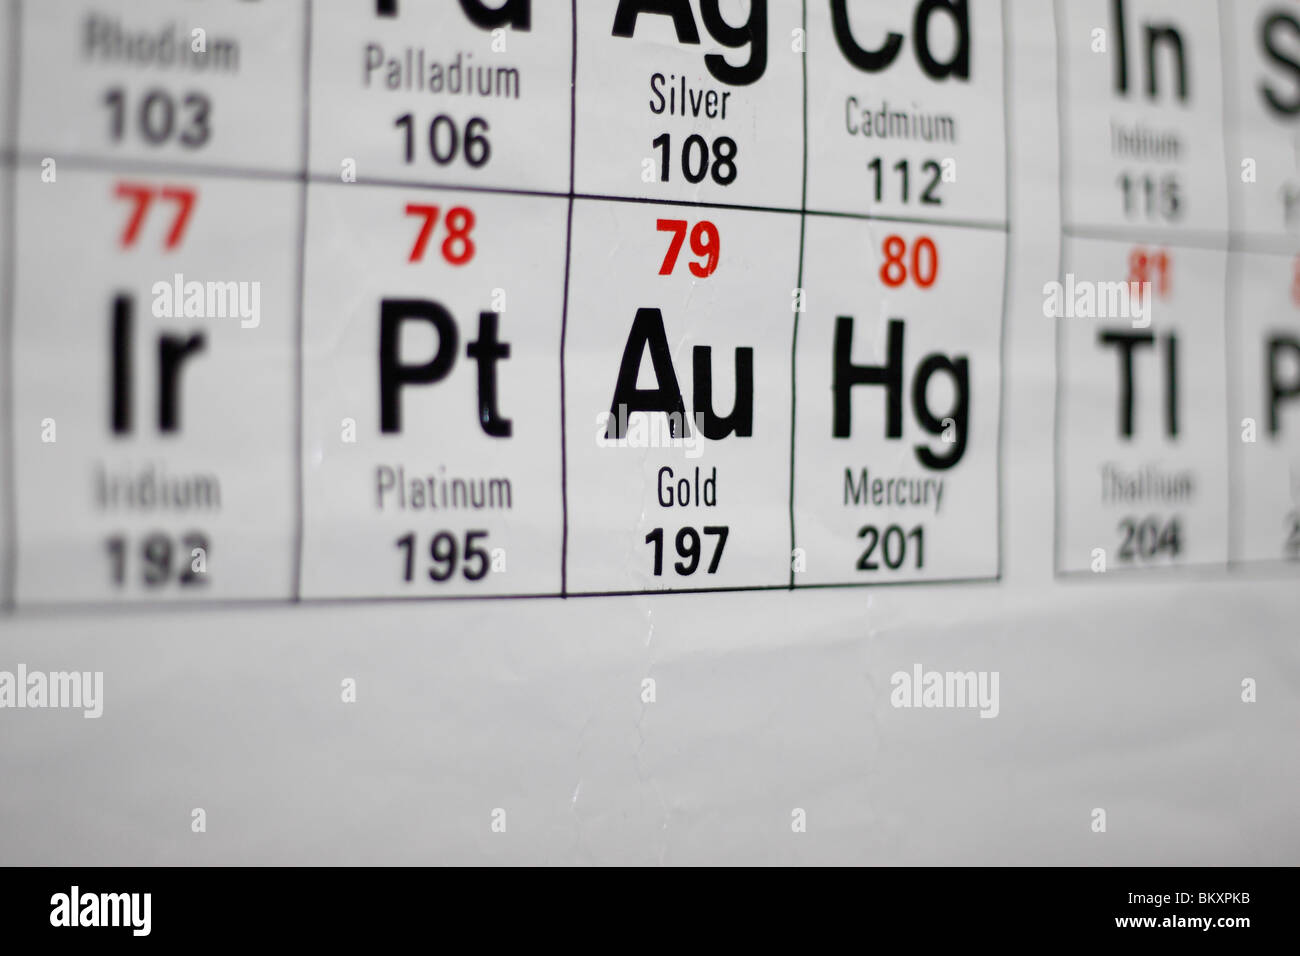 Close up angled view of a uk high school periodic table focusing on close up angled view of a uk high school periodic table focusing on the element goldau with other elements out of focus urtaz